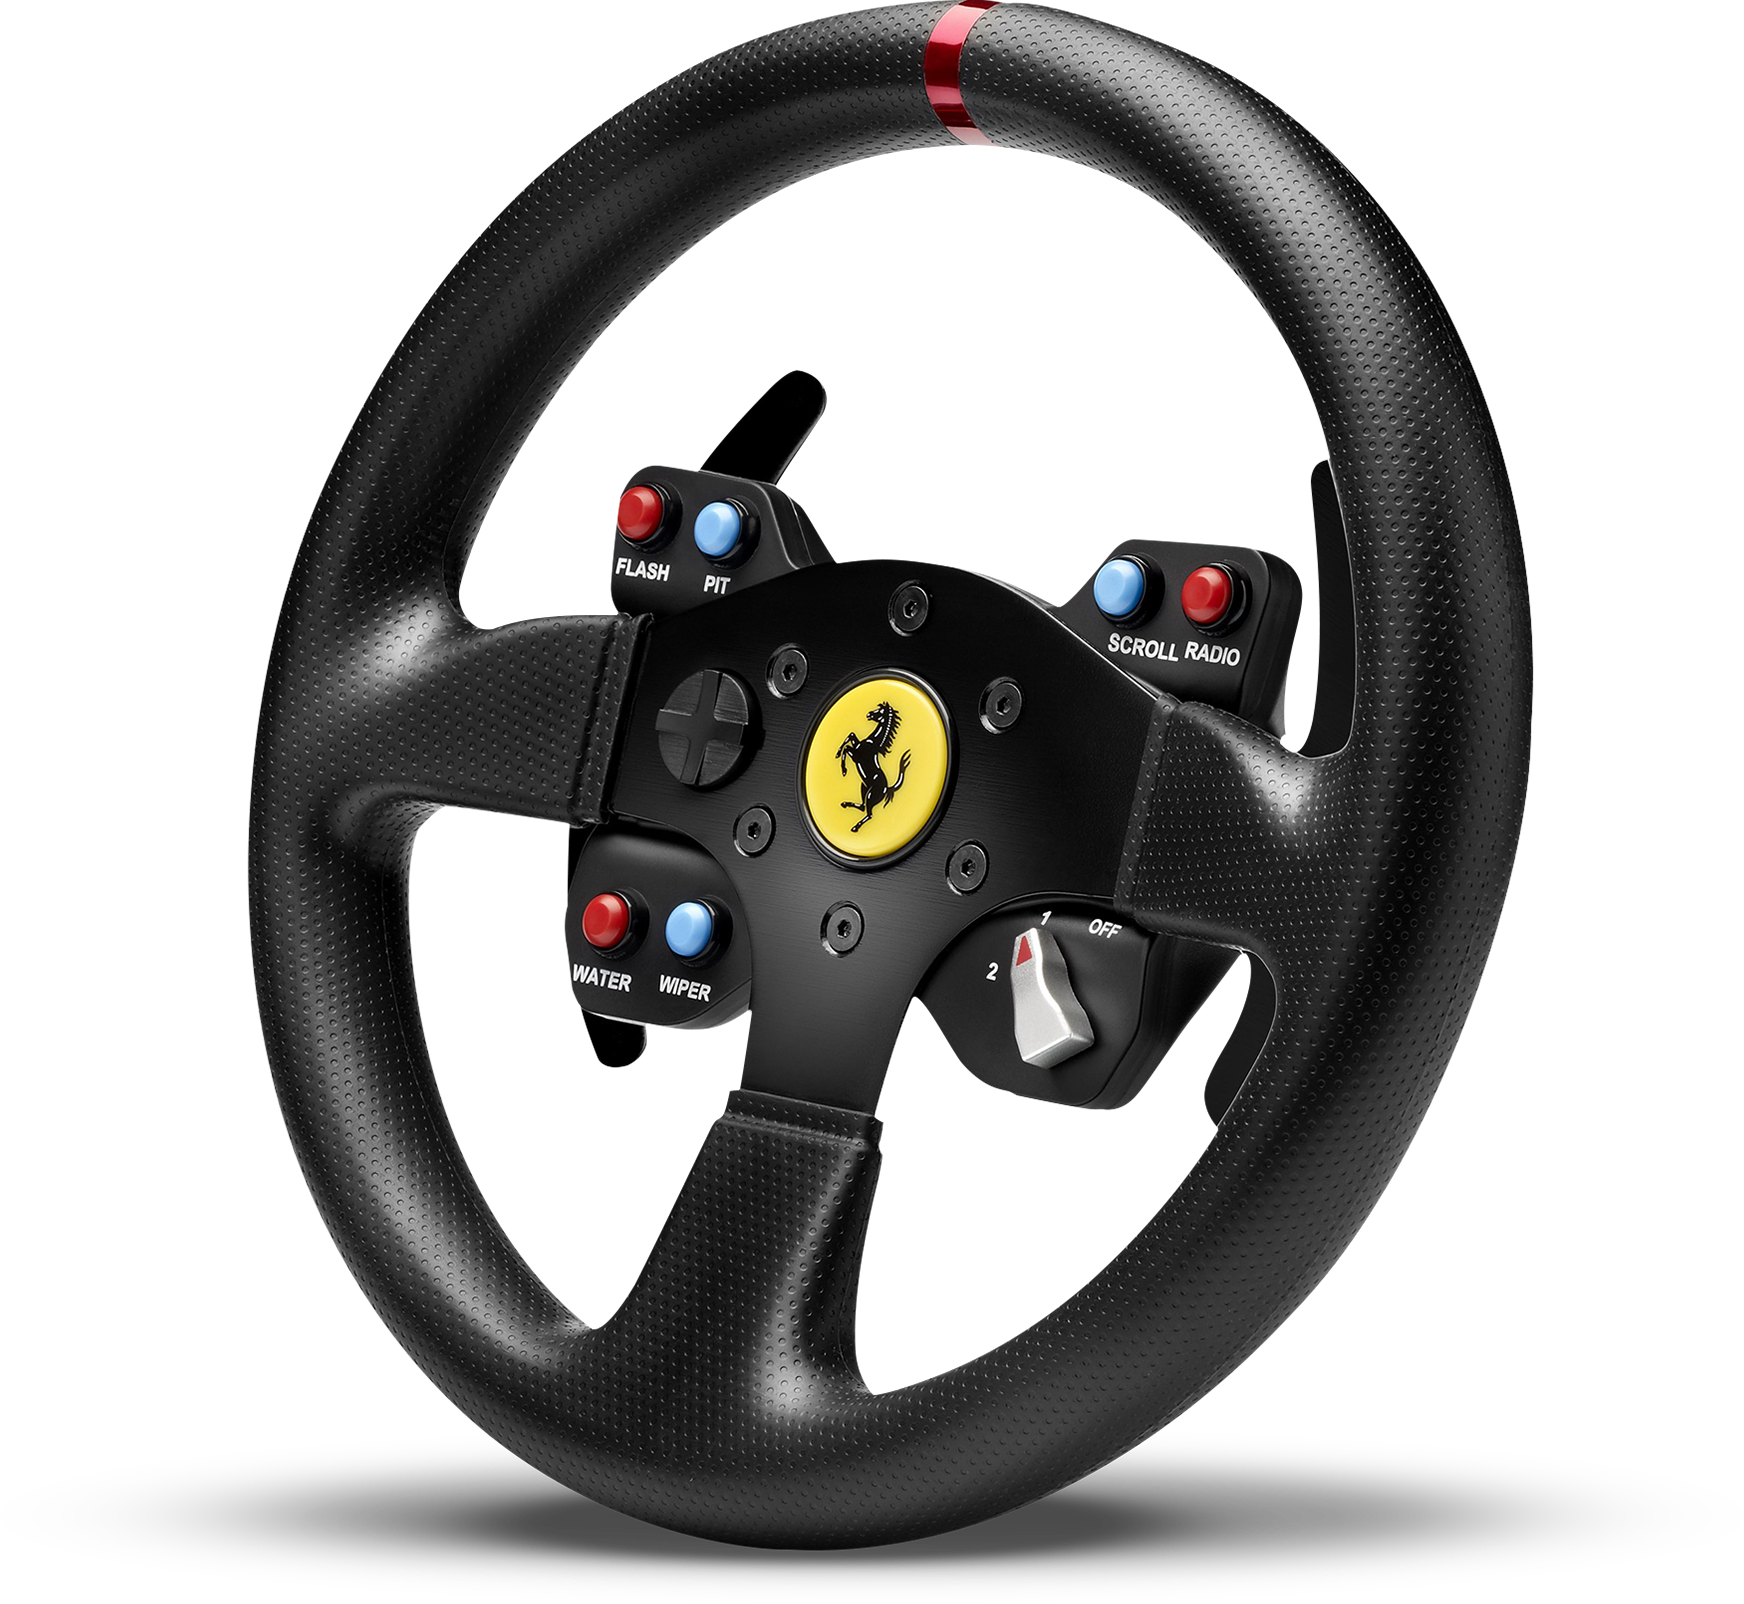 Front view of Thrustmaster Ferrari 458 Challenge Wheel Add-On for T500RS, F1 Wheel & TX Racing